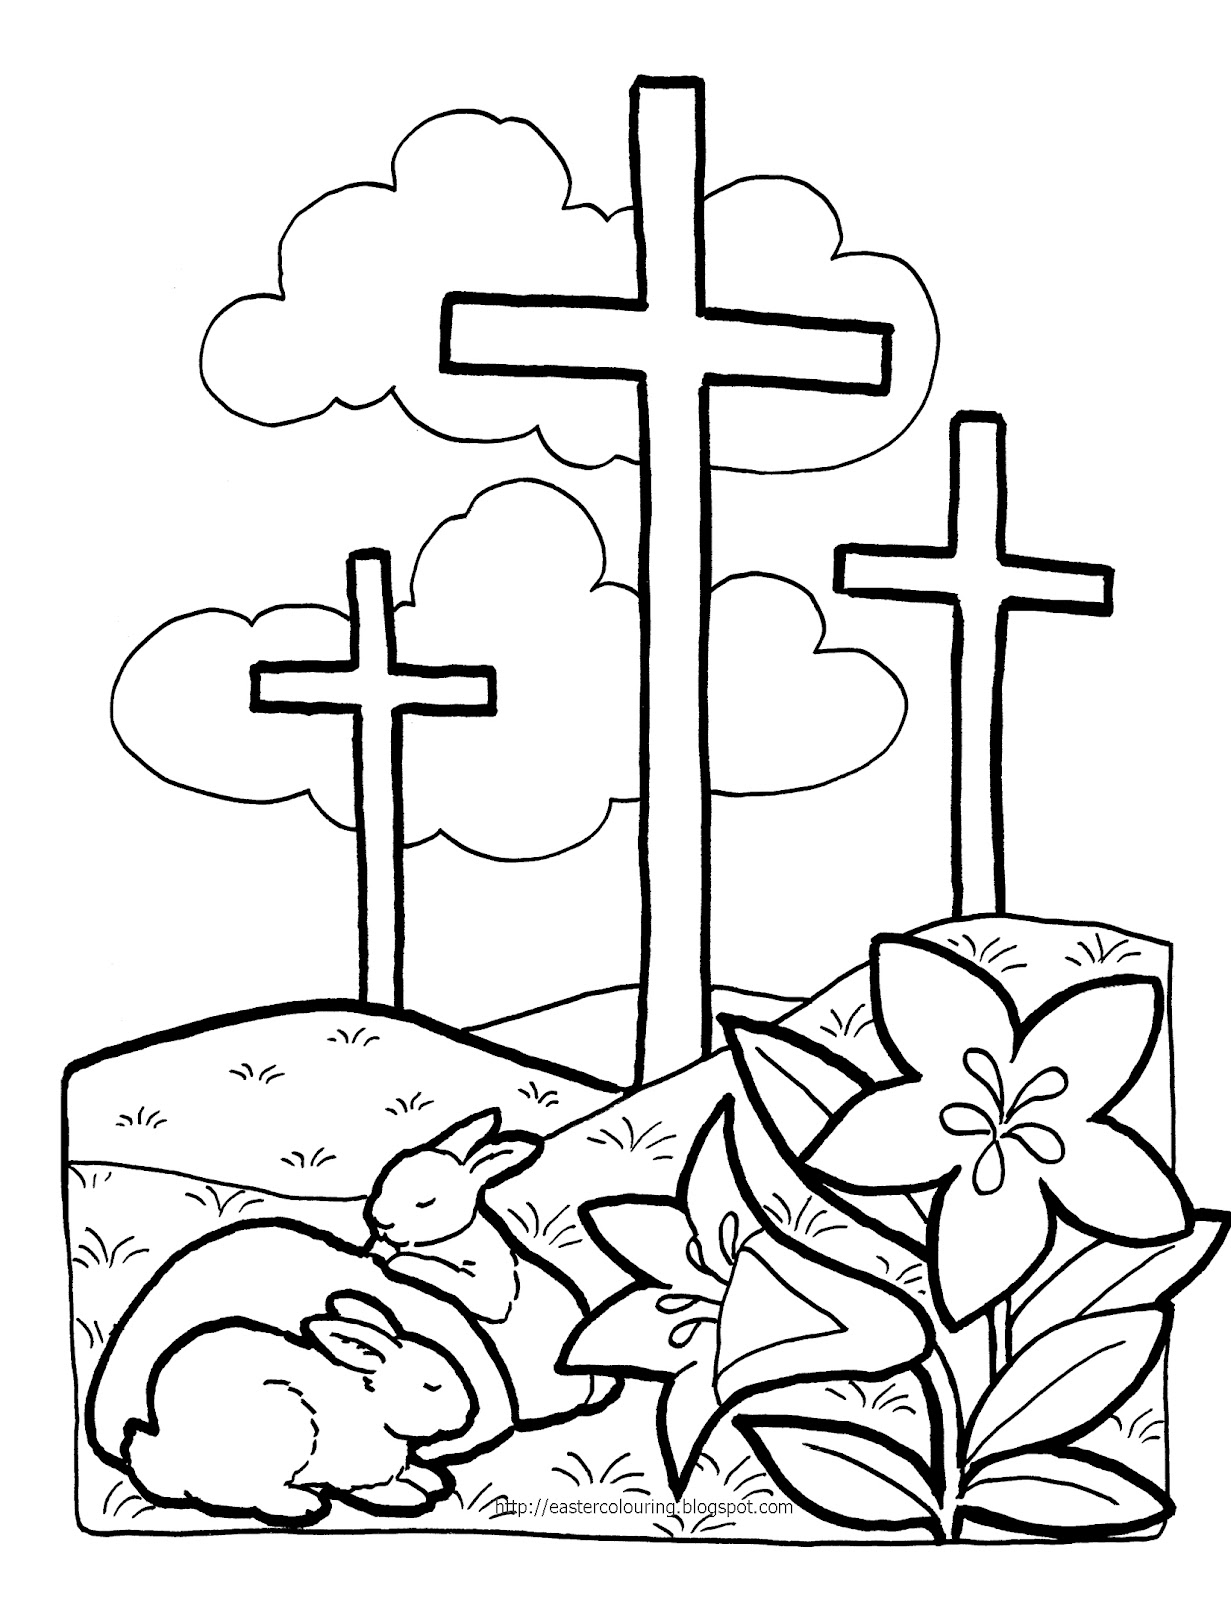 830 Bible Coloring Pages Free Printable Images & Pictures In HD